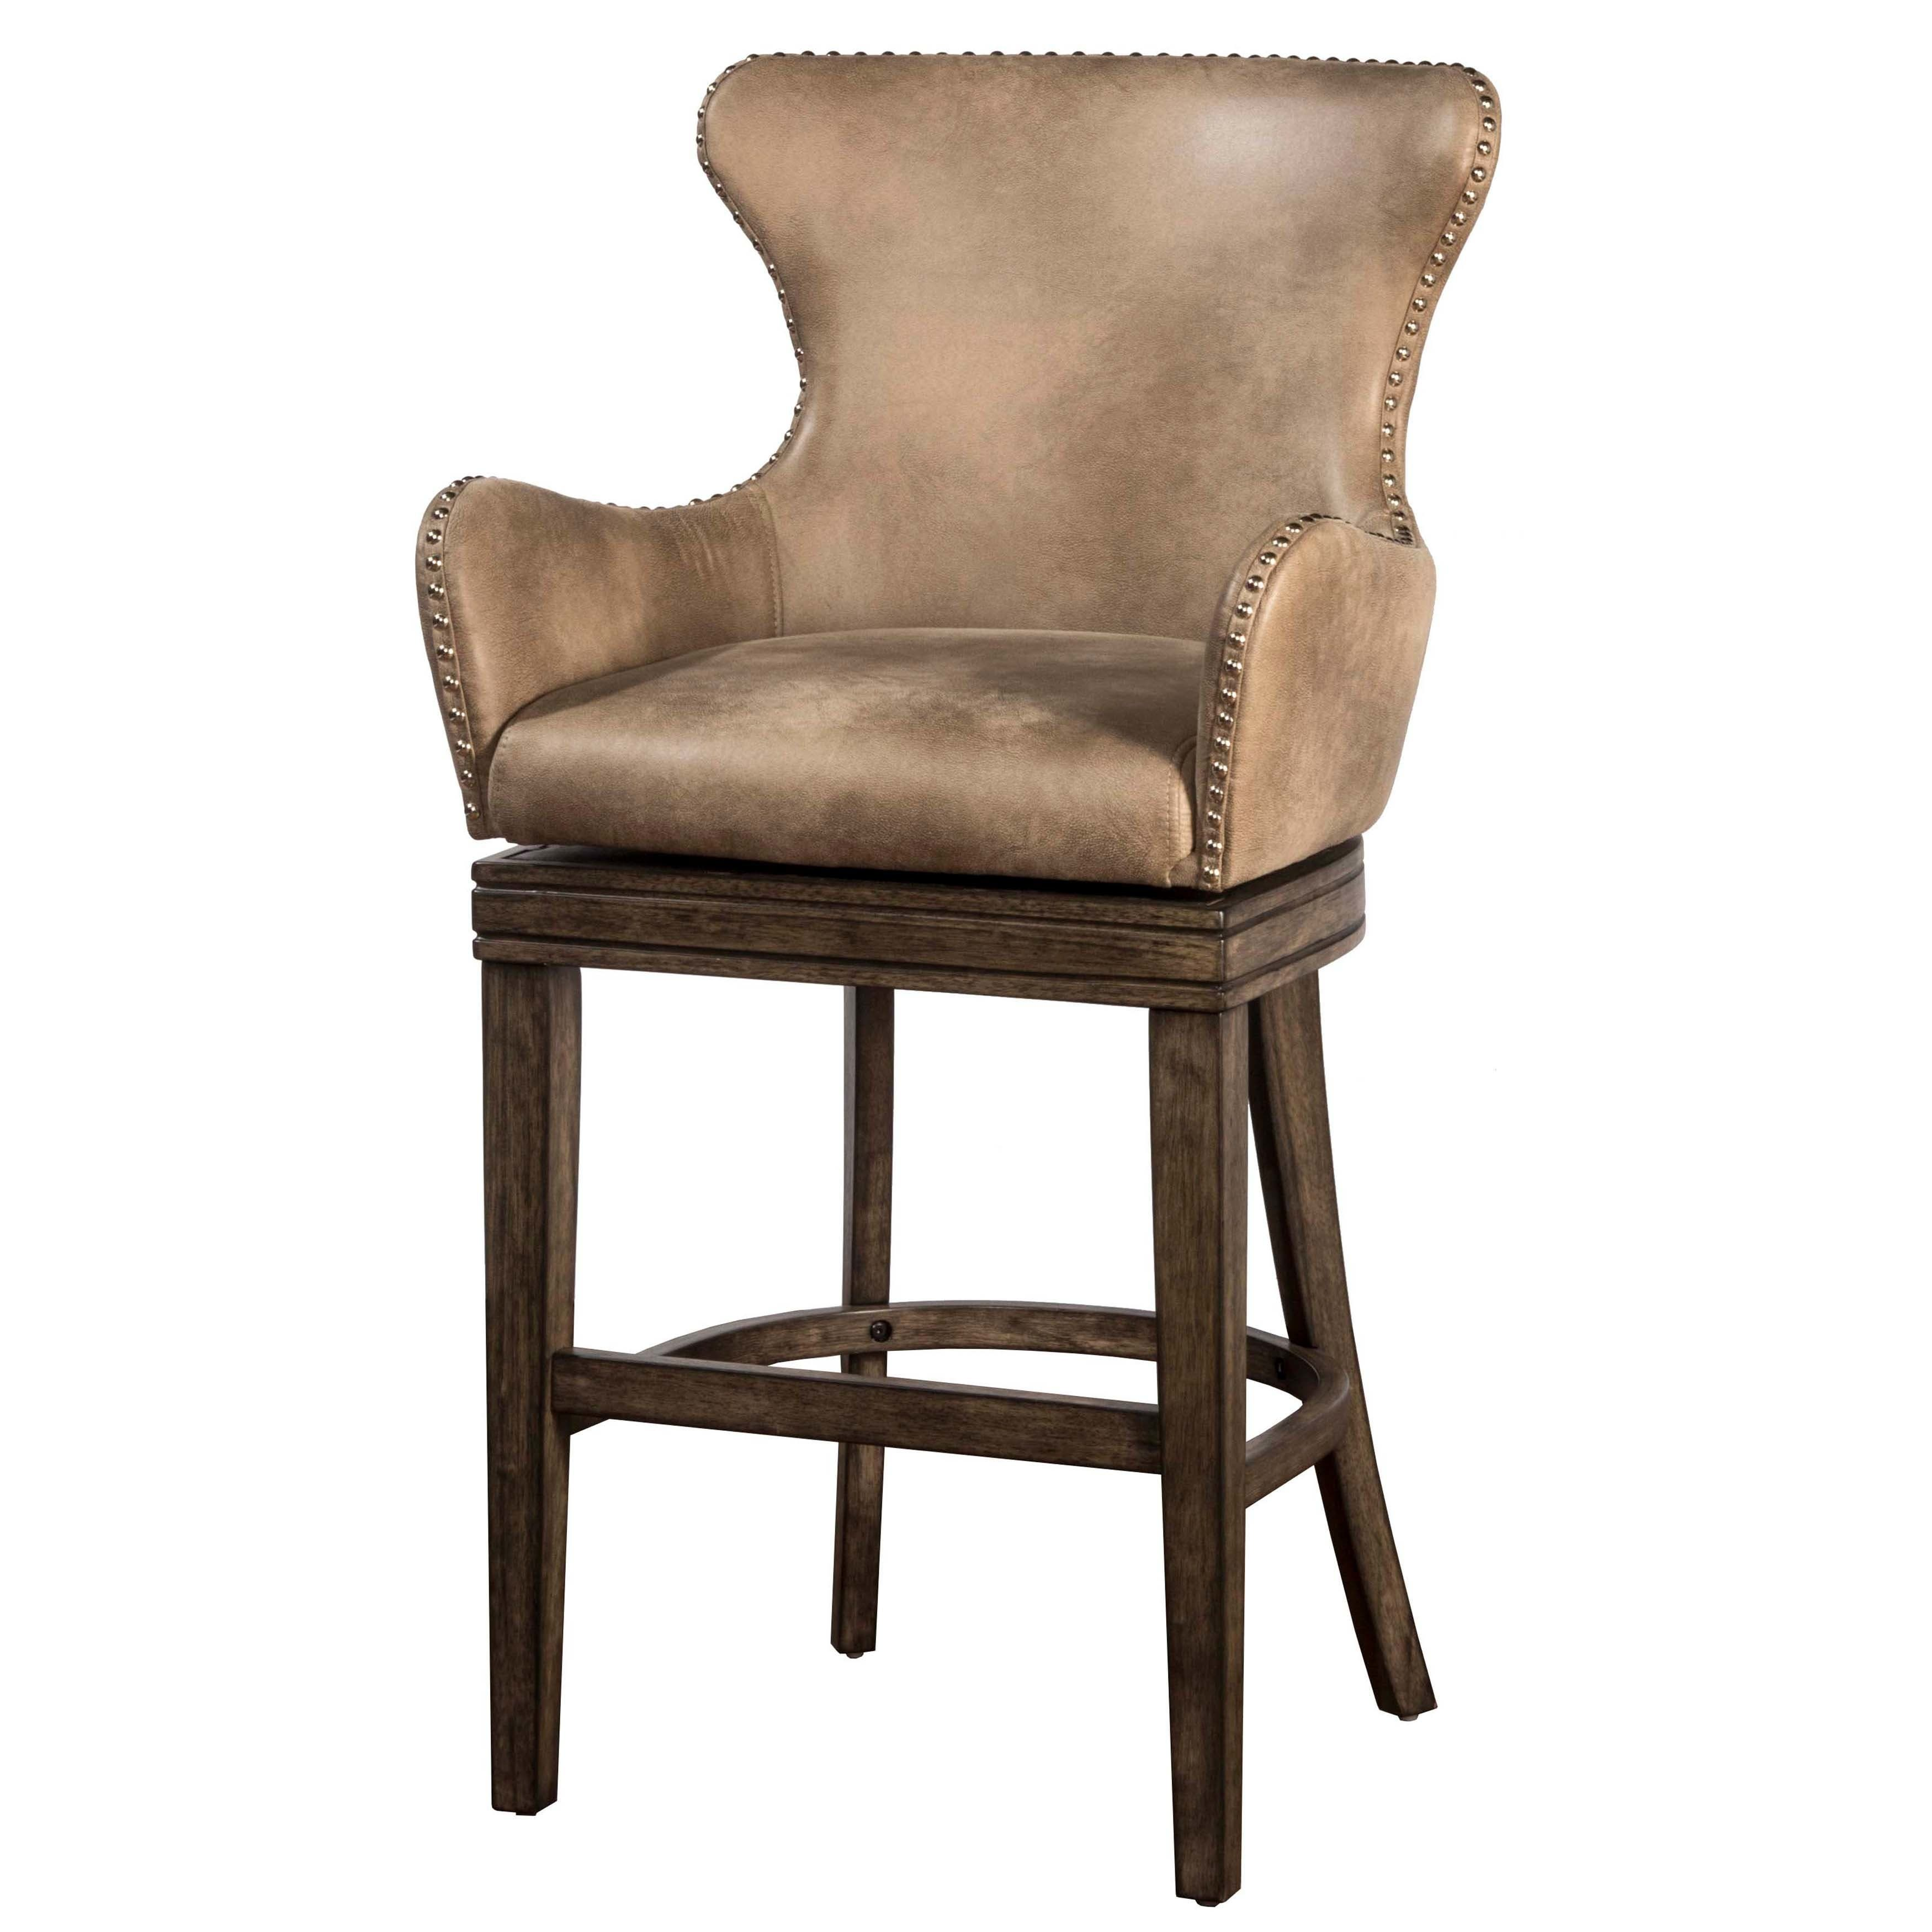 Buy Counter & Bar Stools Online At Overstock